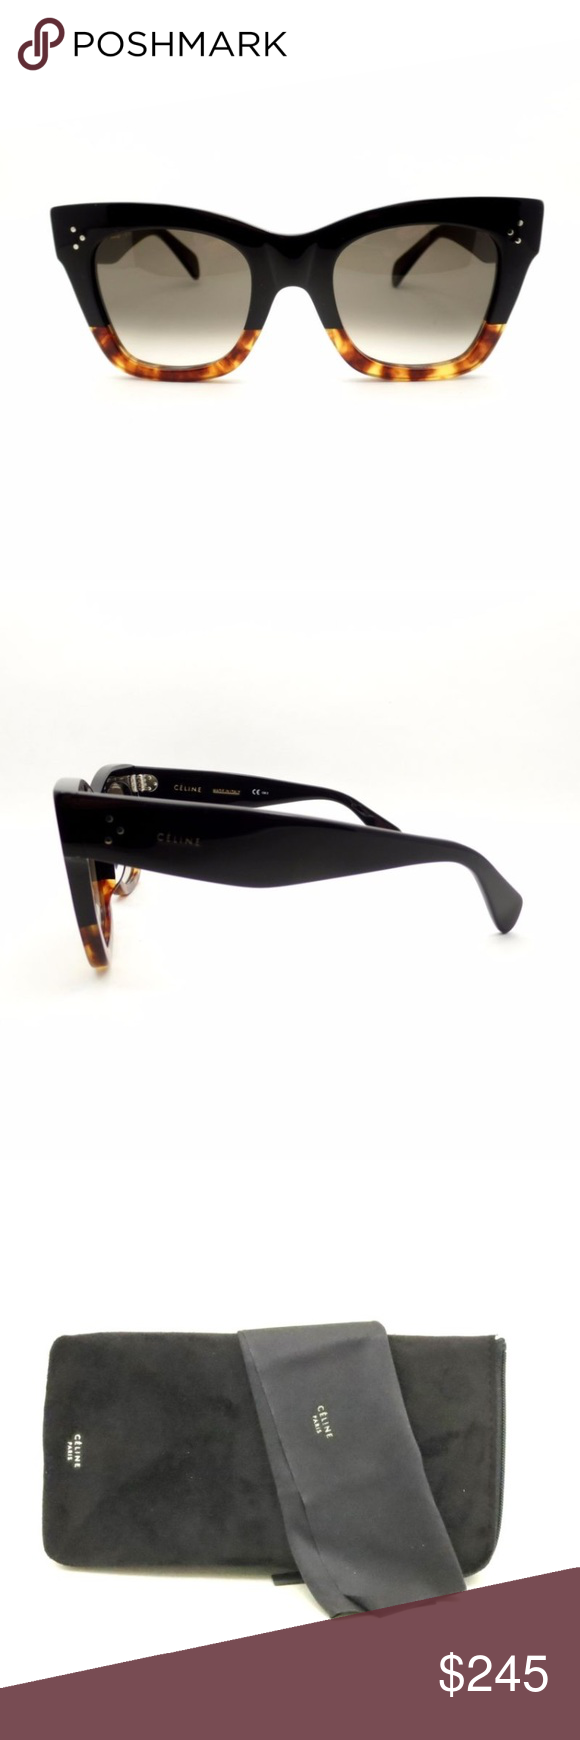 dfe95fdc486f Celine CL 41098 F S FU5 Z3 Black Havana Tortoise Condition New with tags  GenderWomen Protection100% UV BrandCeline Lens TechnologyFade  StyleRectangular ...